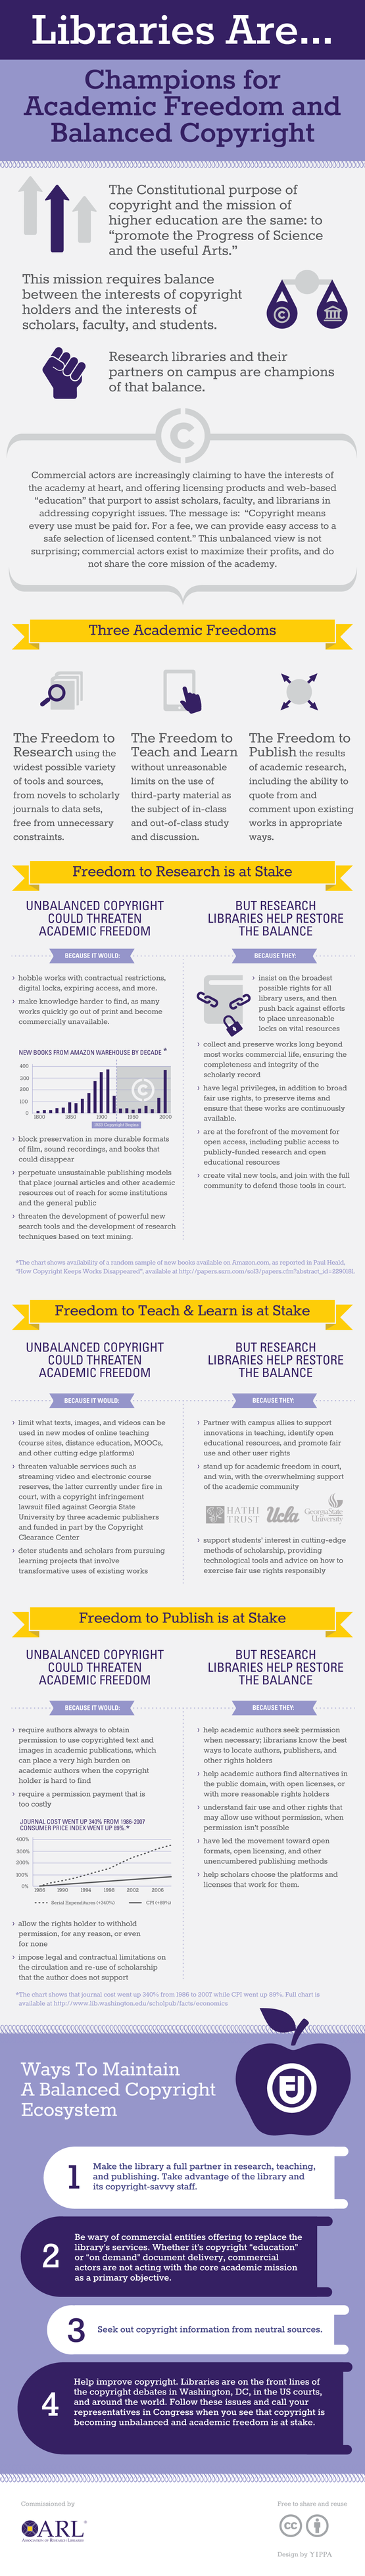 Infographic-academic-freedom-balanced-copyright-2014.png